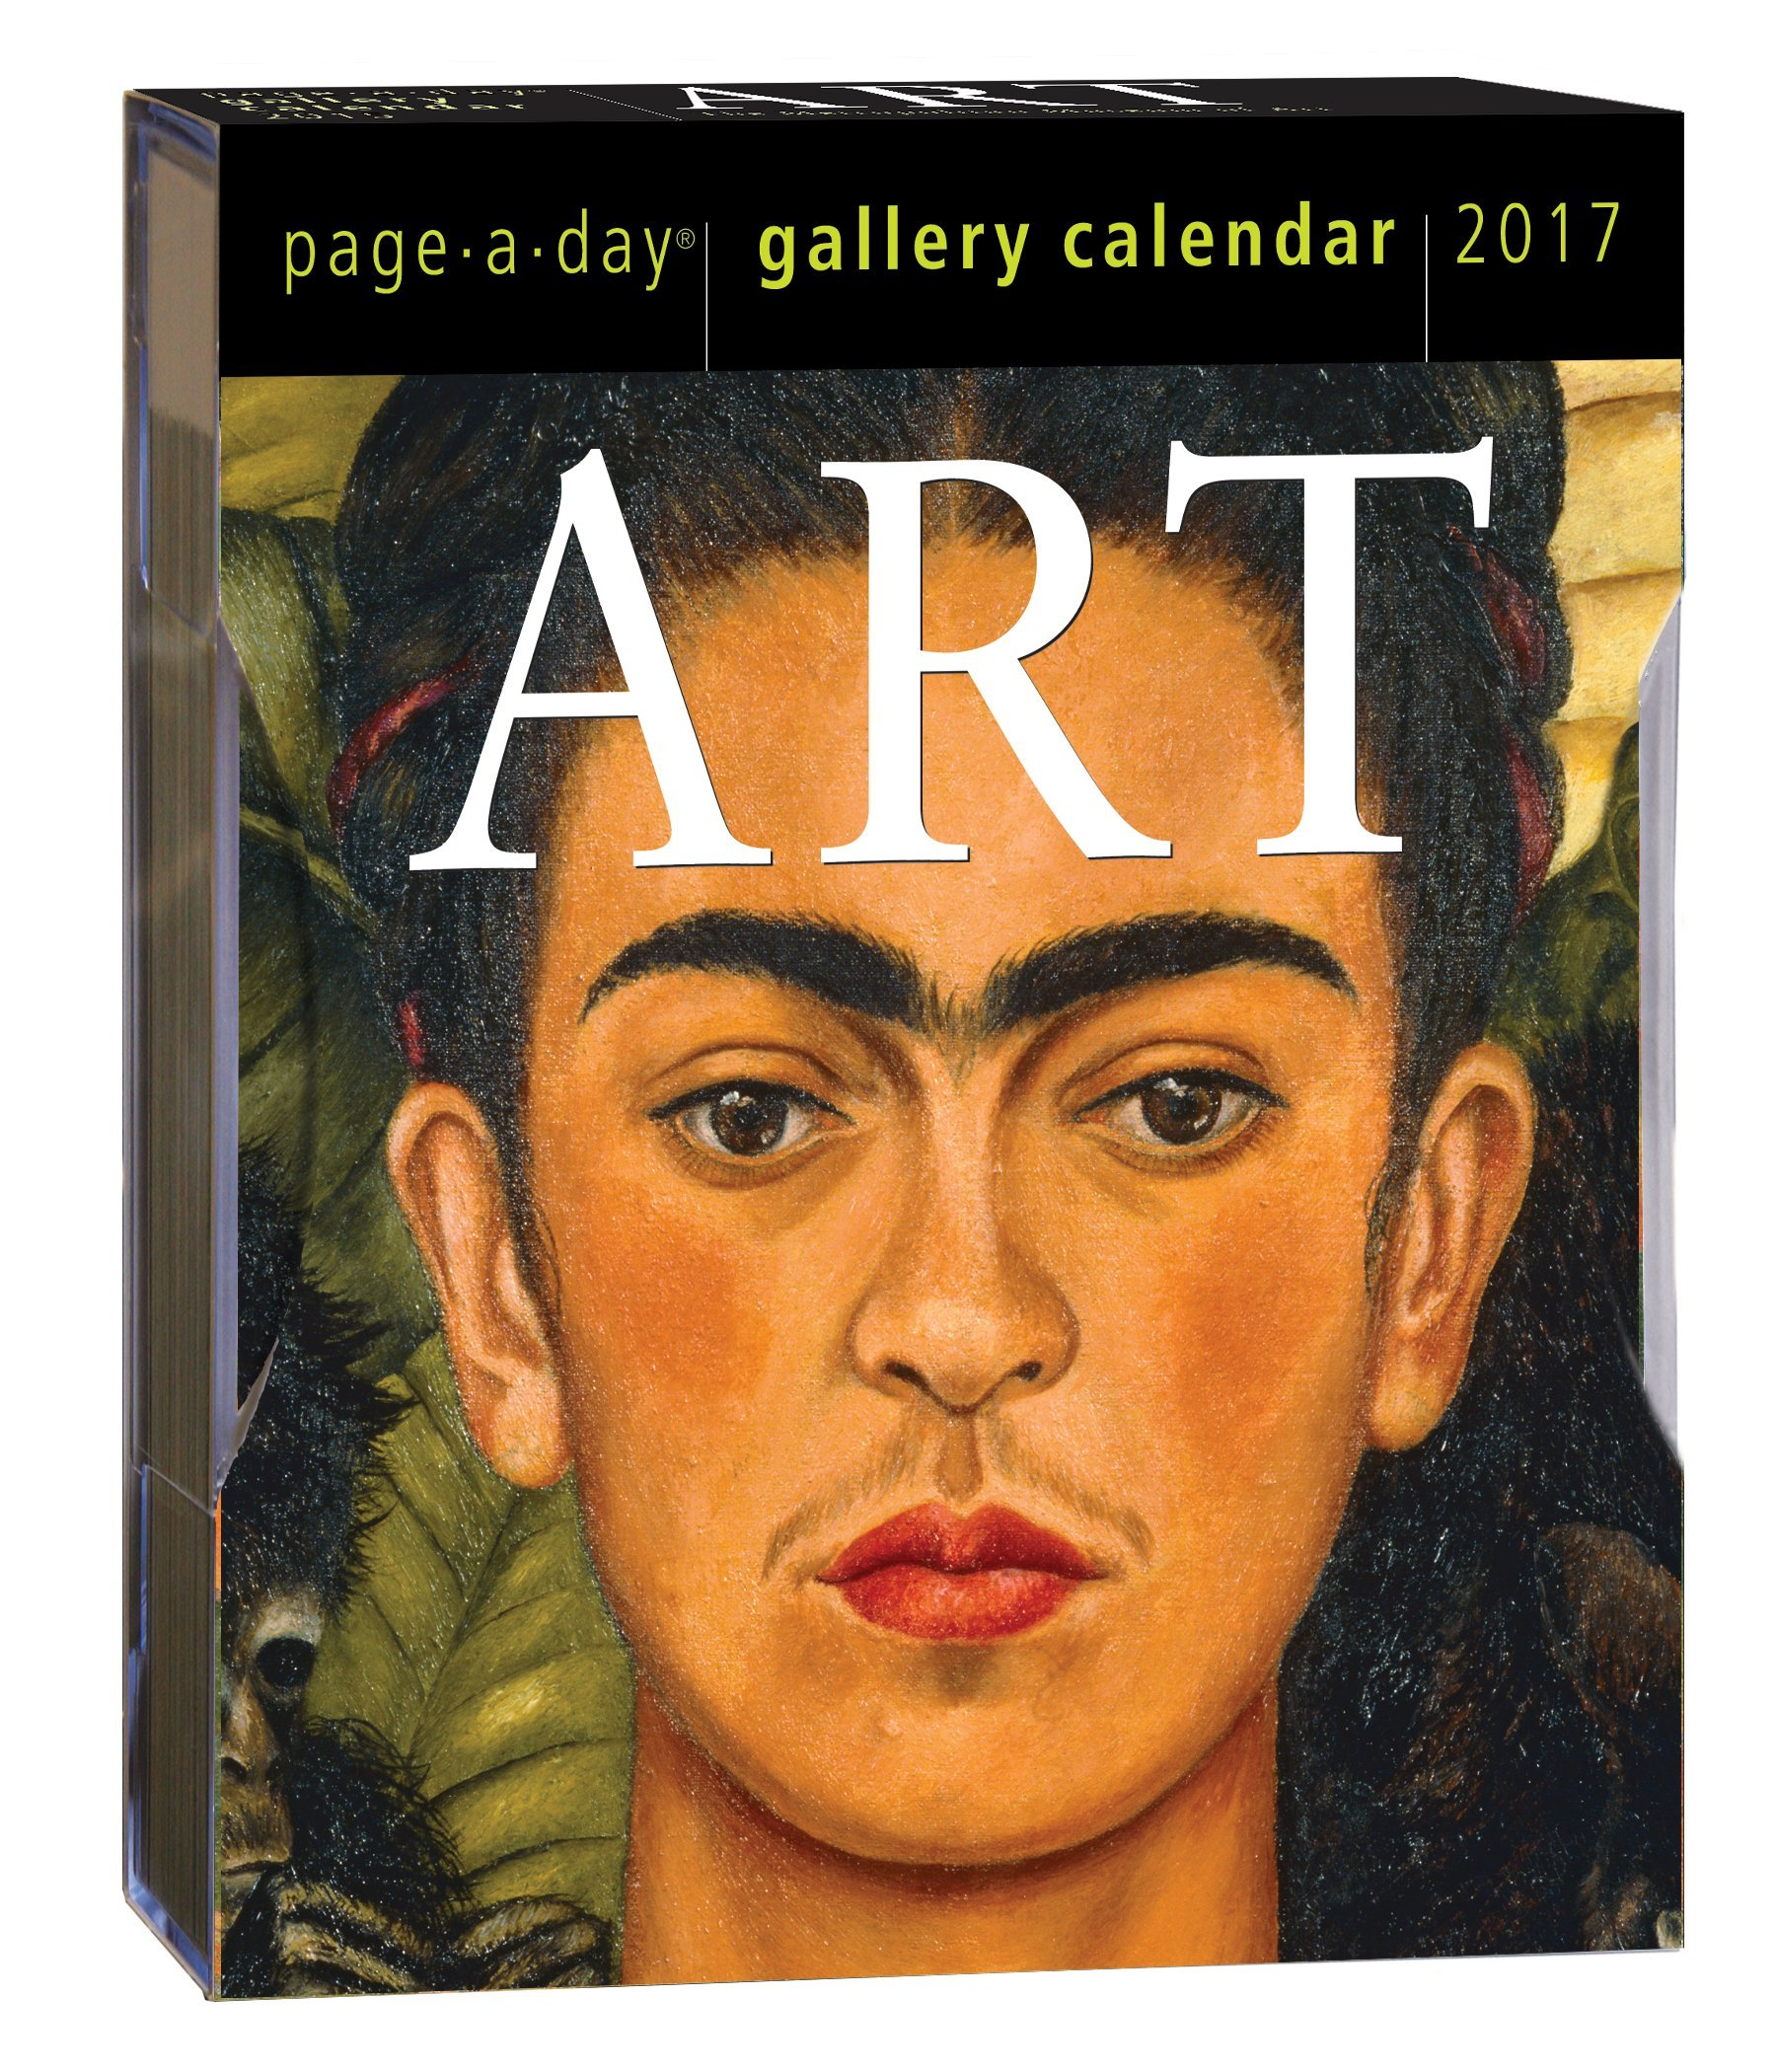 Buy Art PageADay Gallery Calendar 2017 Book Online at Low Prices